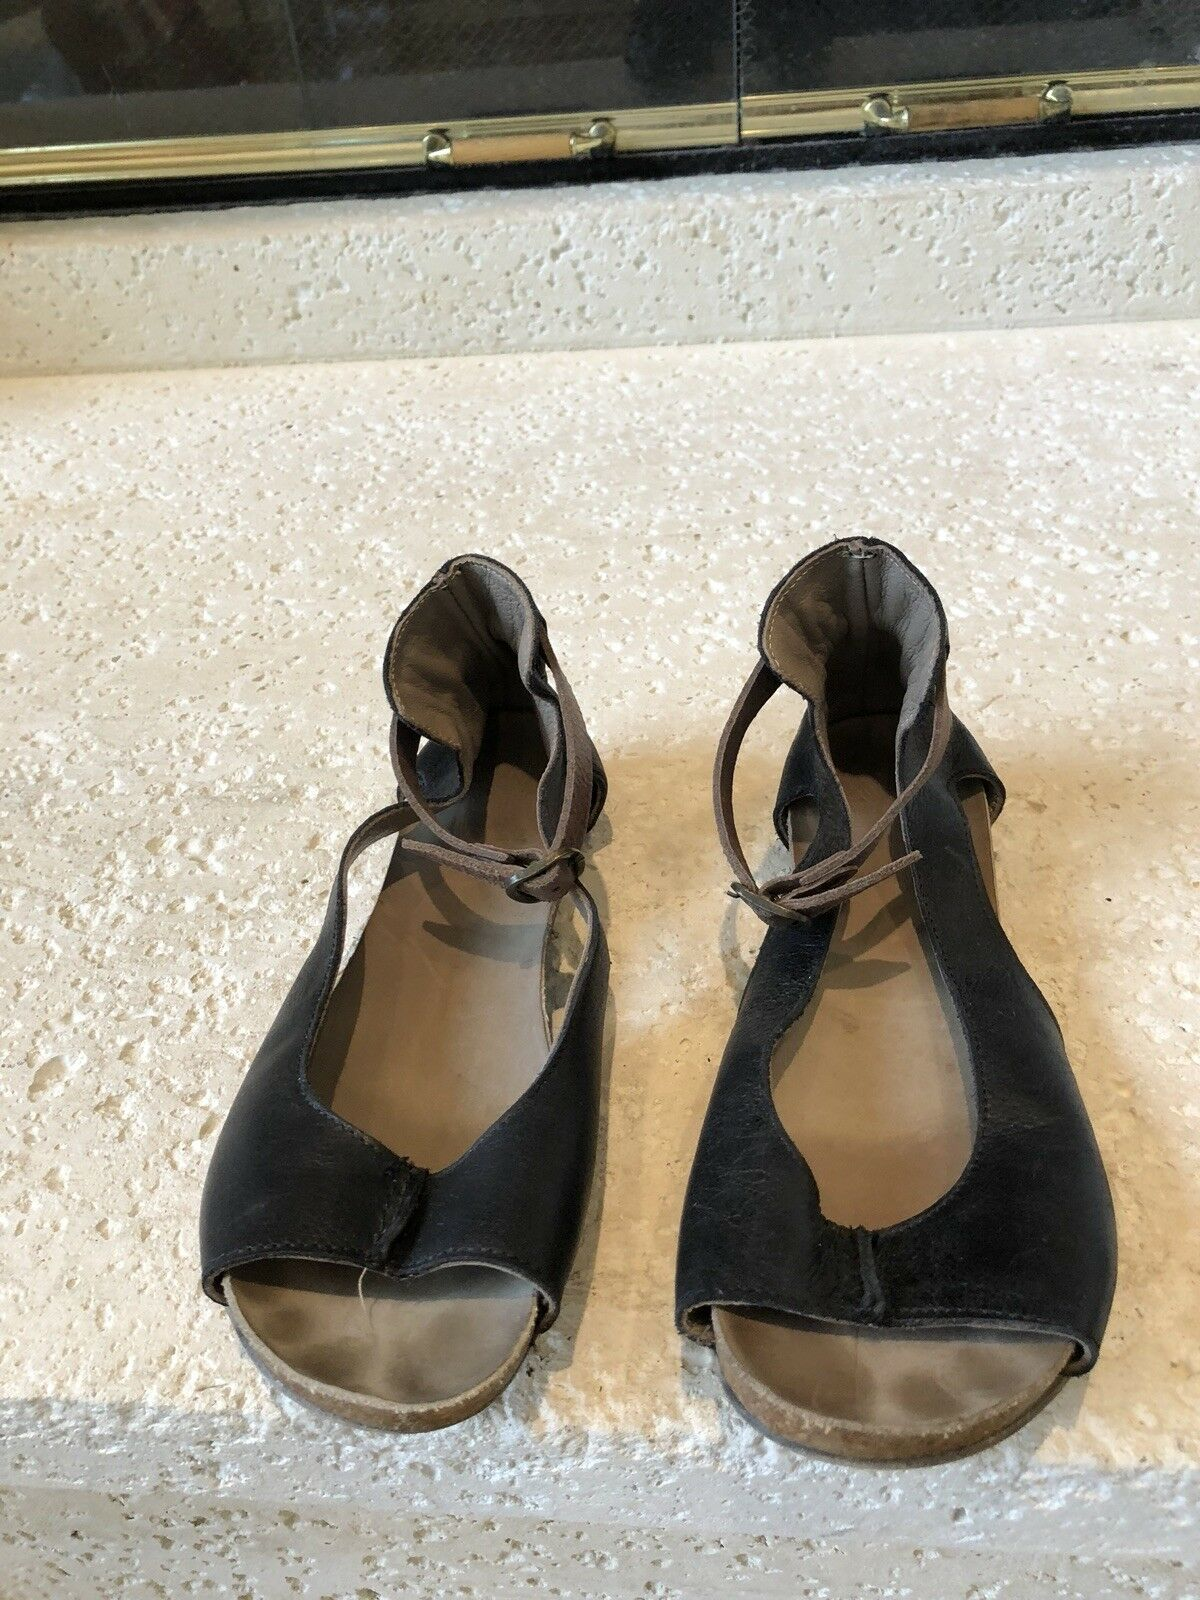 Lili Mill Made In  Sandals Size 38 US 7.5